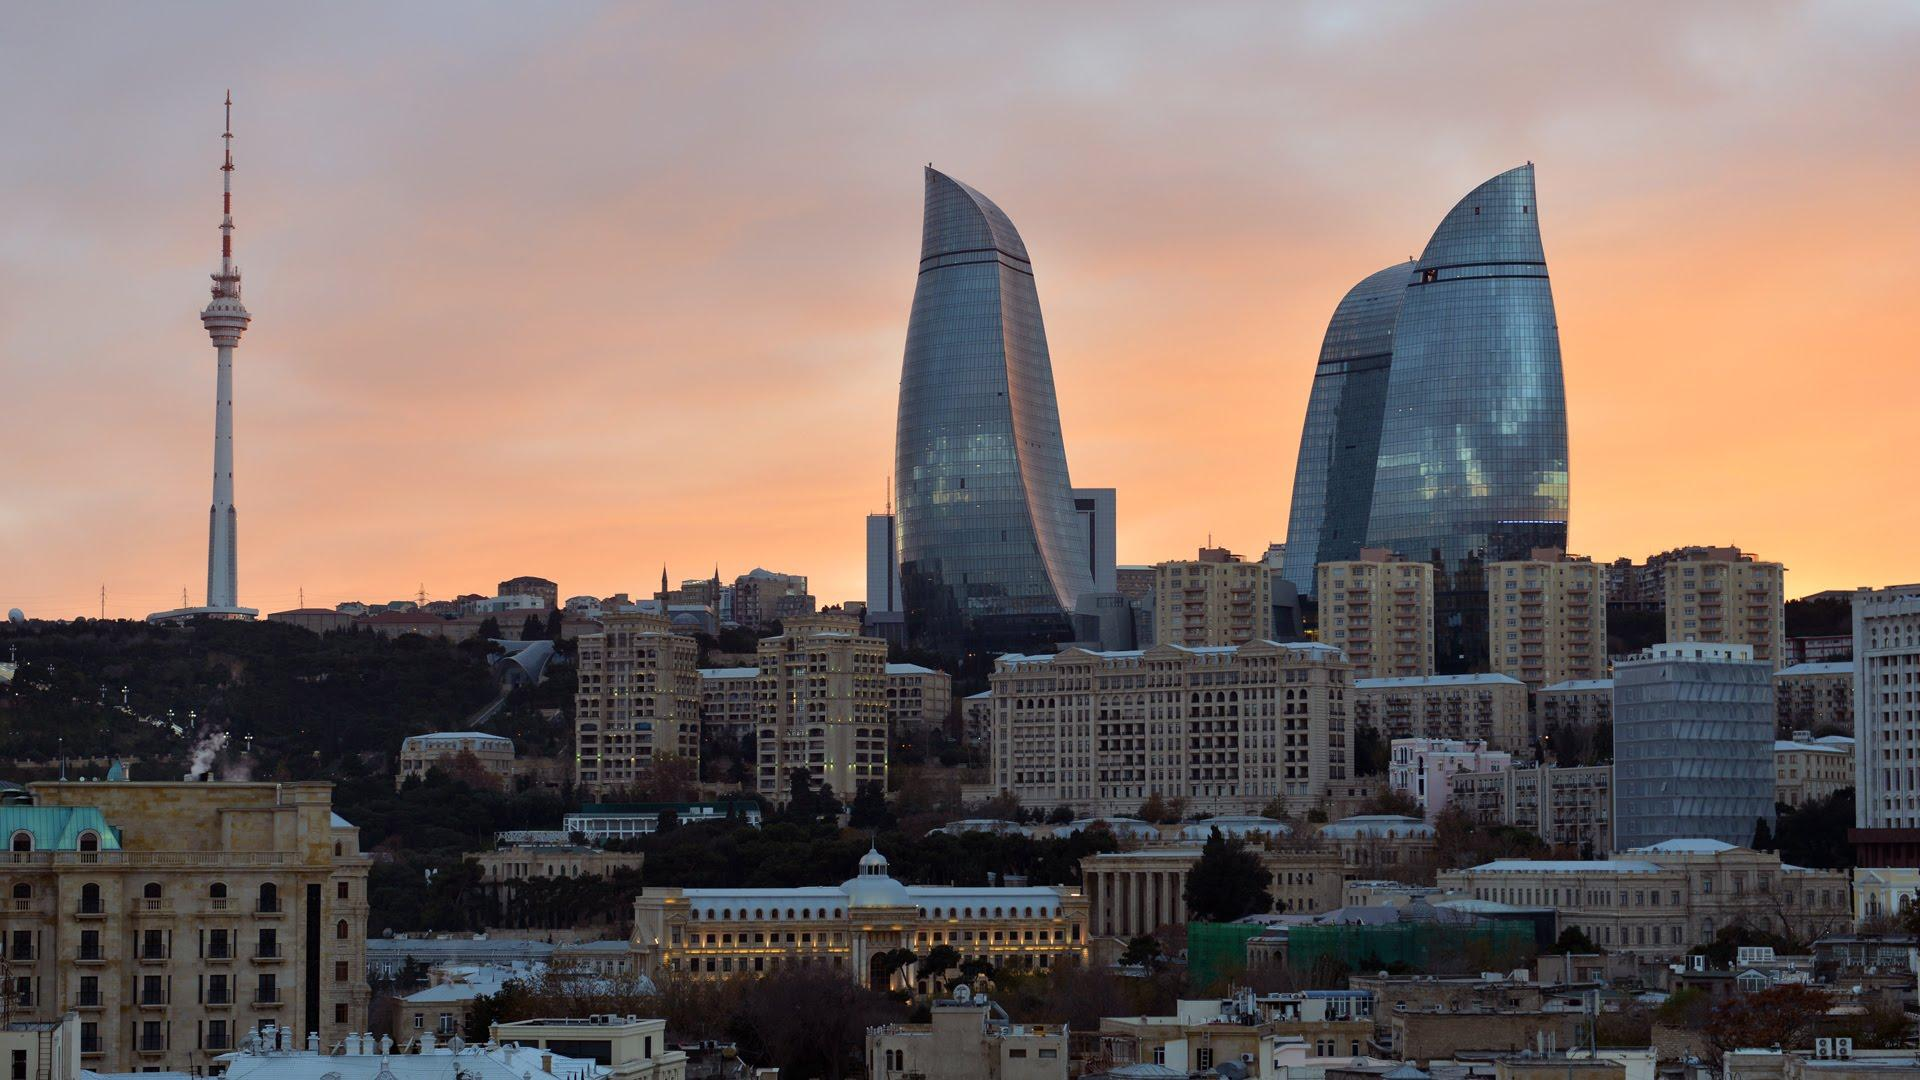 Russian TV channel will broadcast series of programs about Azerbaijan